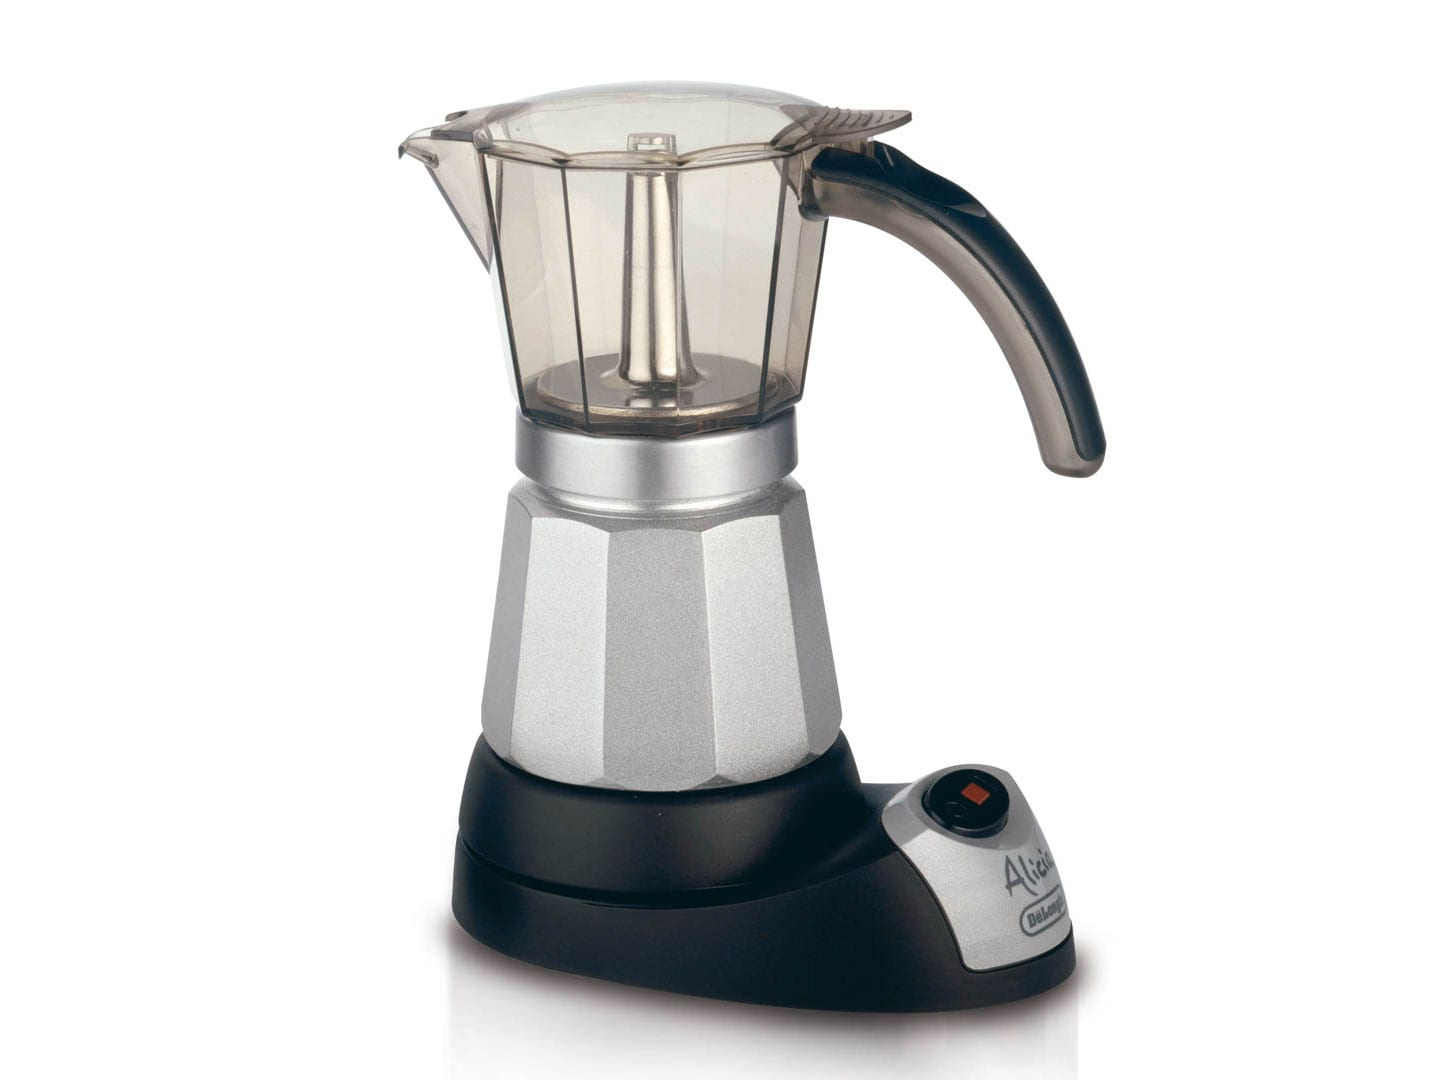 DeLonghi Coffee Machine Moka Alicia EMK6